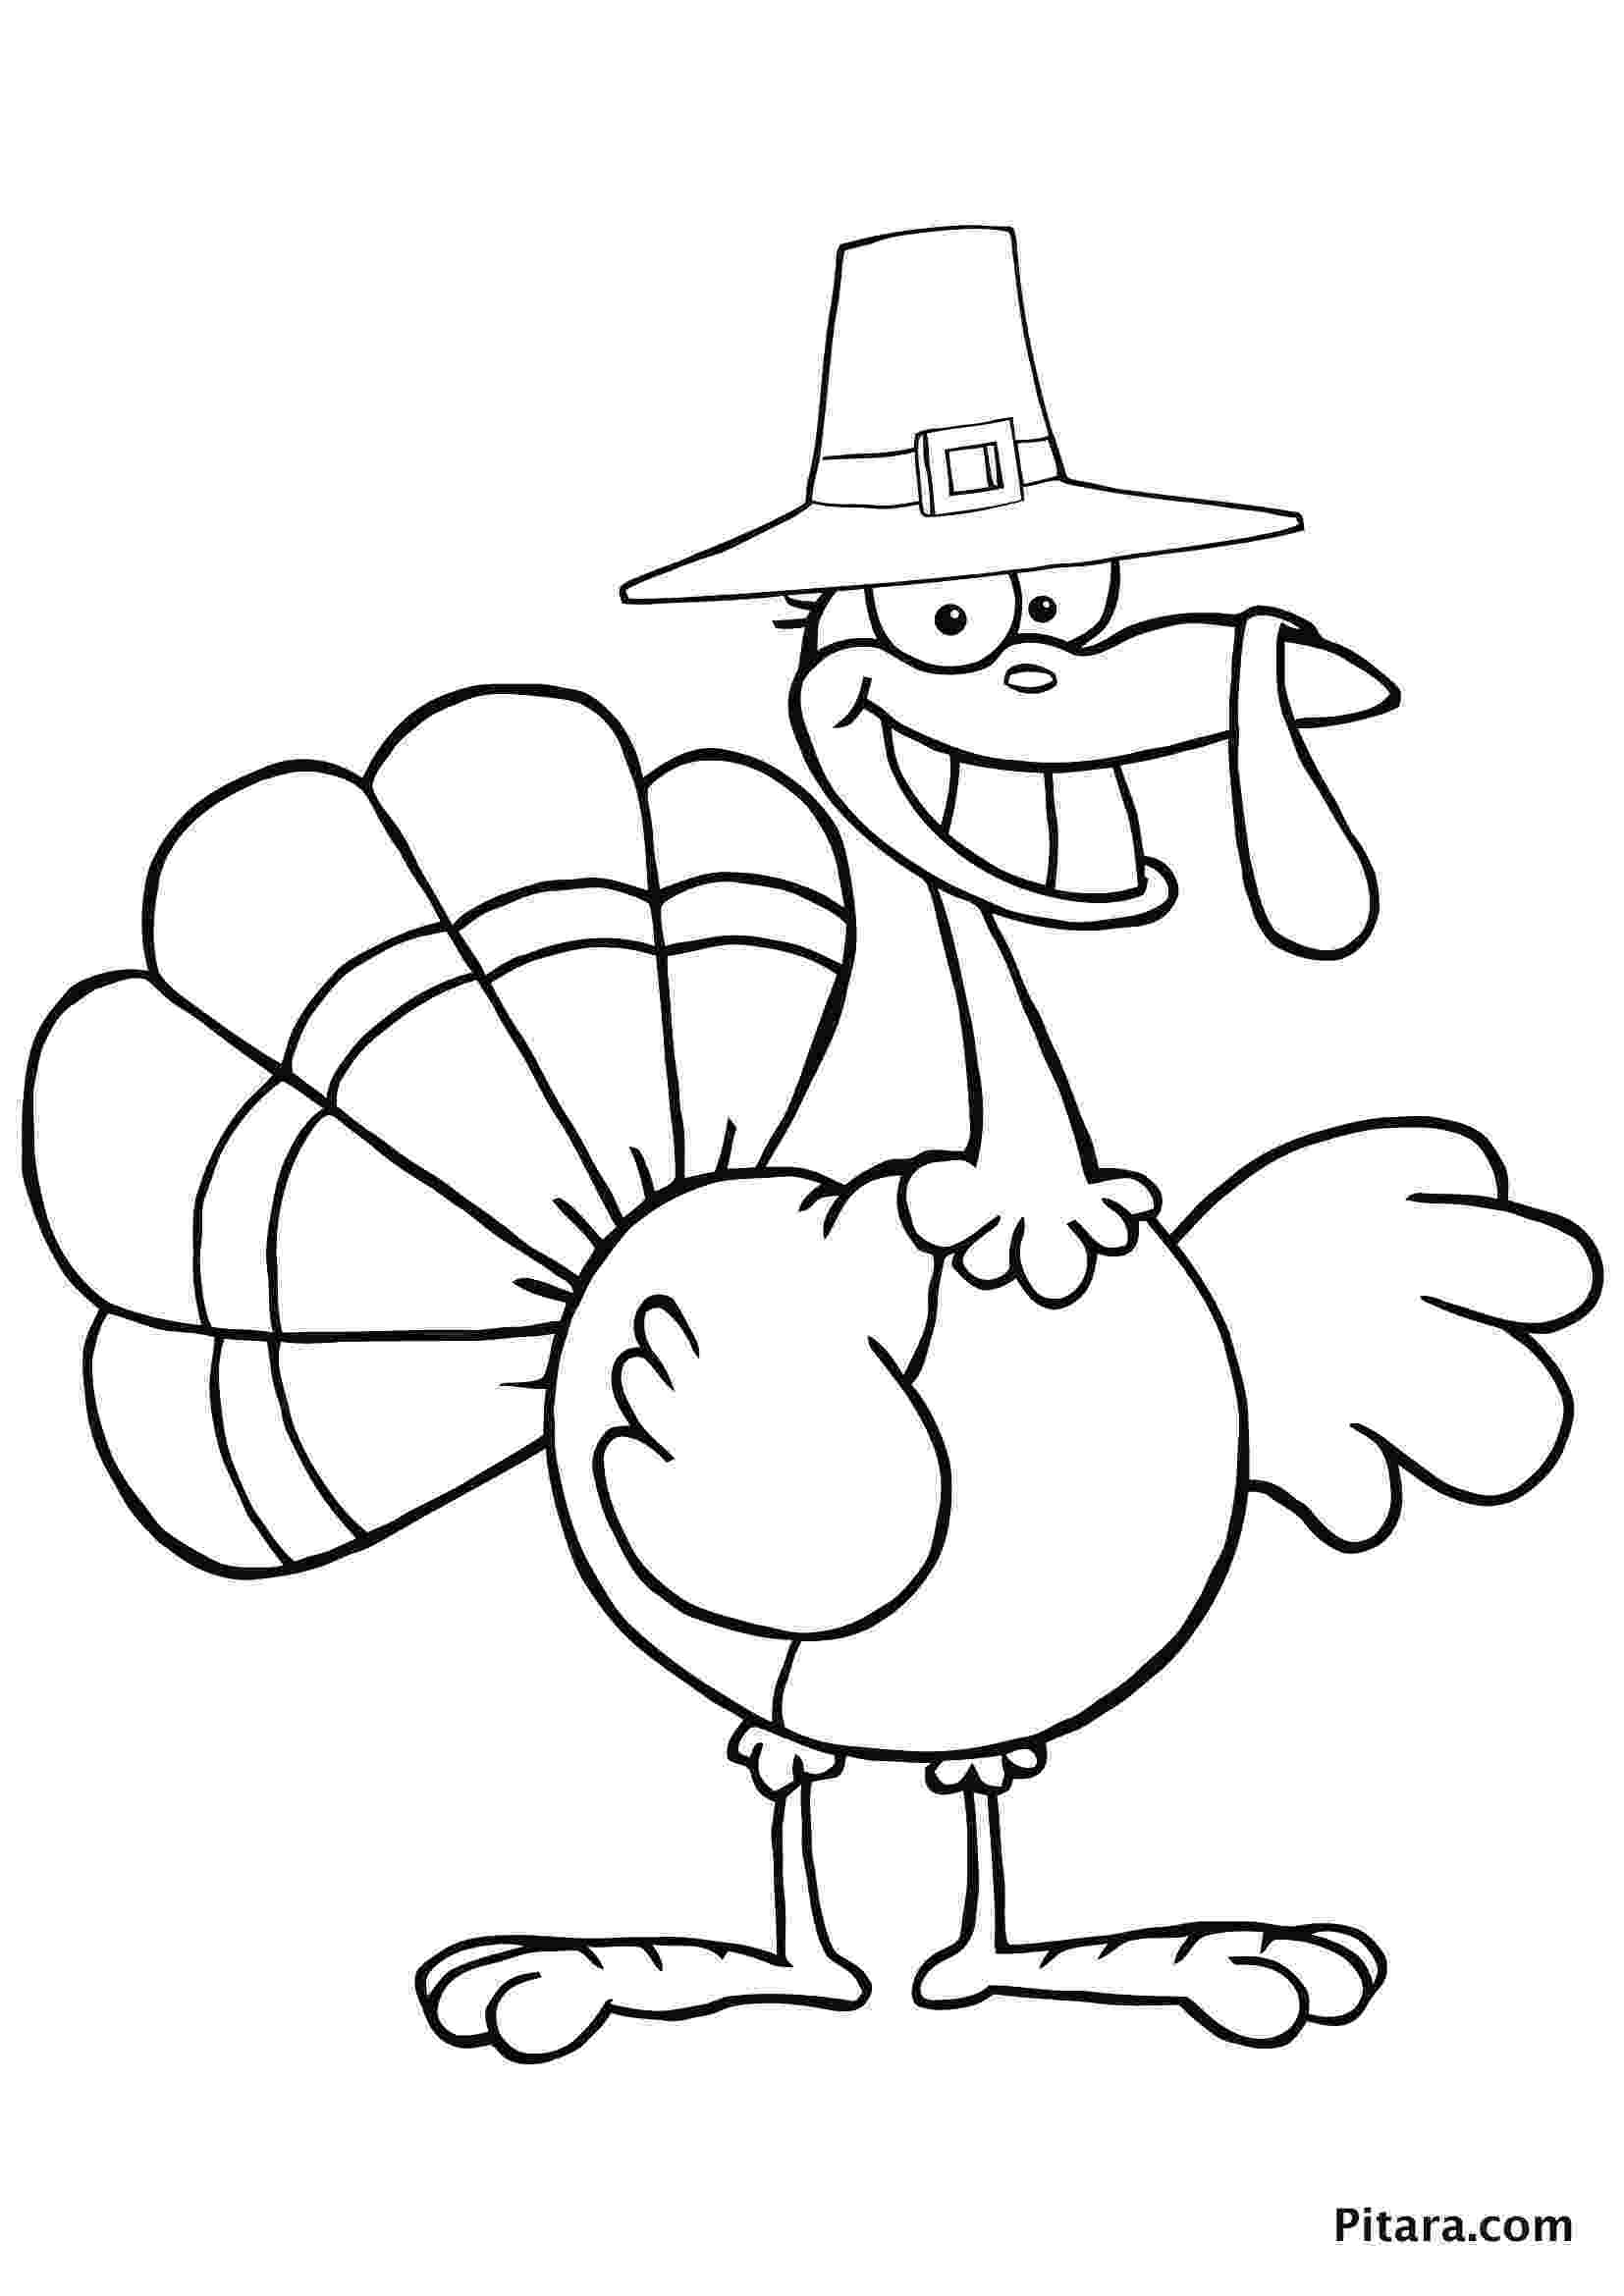 coloring pages turkey turkey coloring pages for kids pitara kids network turkey pages coloring